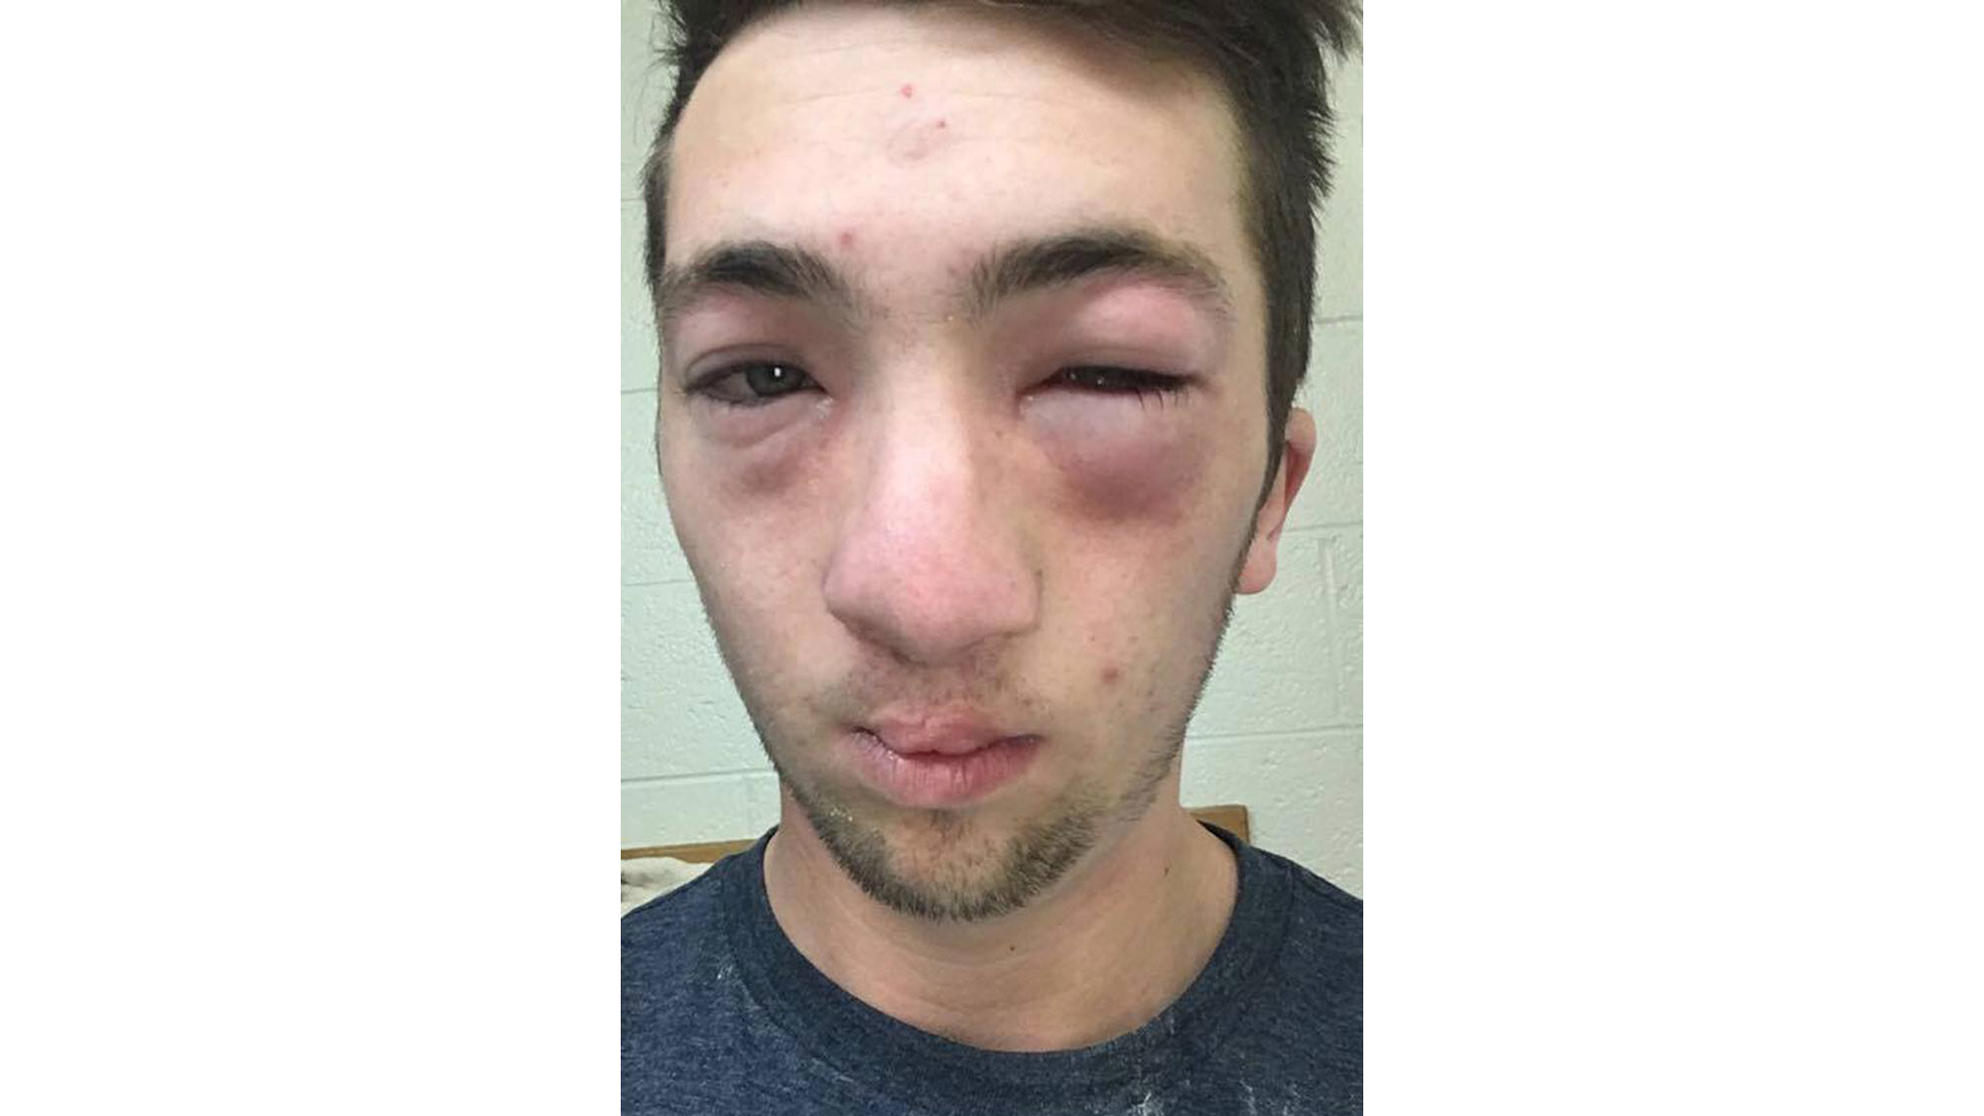 College Student with Severe Allergy Allegedly Hazed with Peanut Butter: 'He Could Have Been Killed'